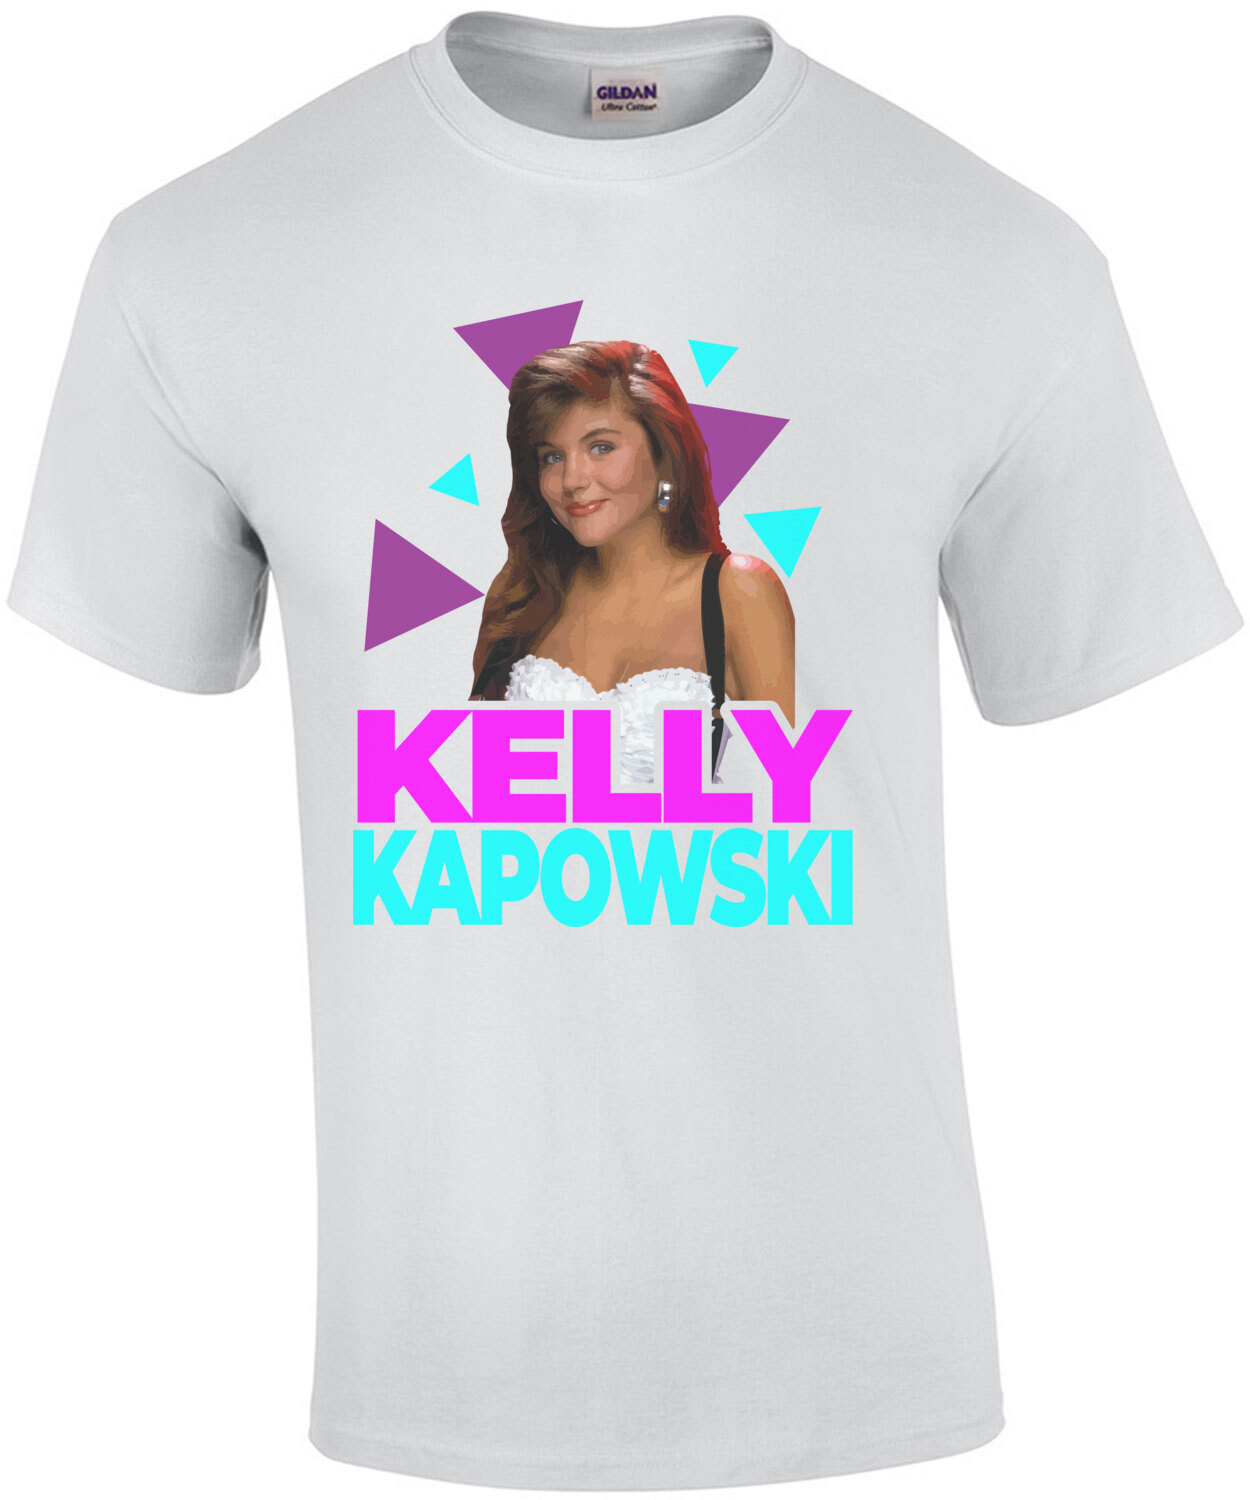 Saved By The Bell - Kelly Kapowski - 90's T-Shirt